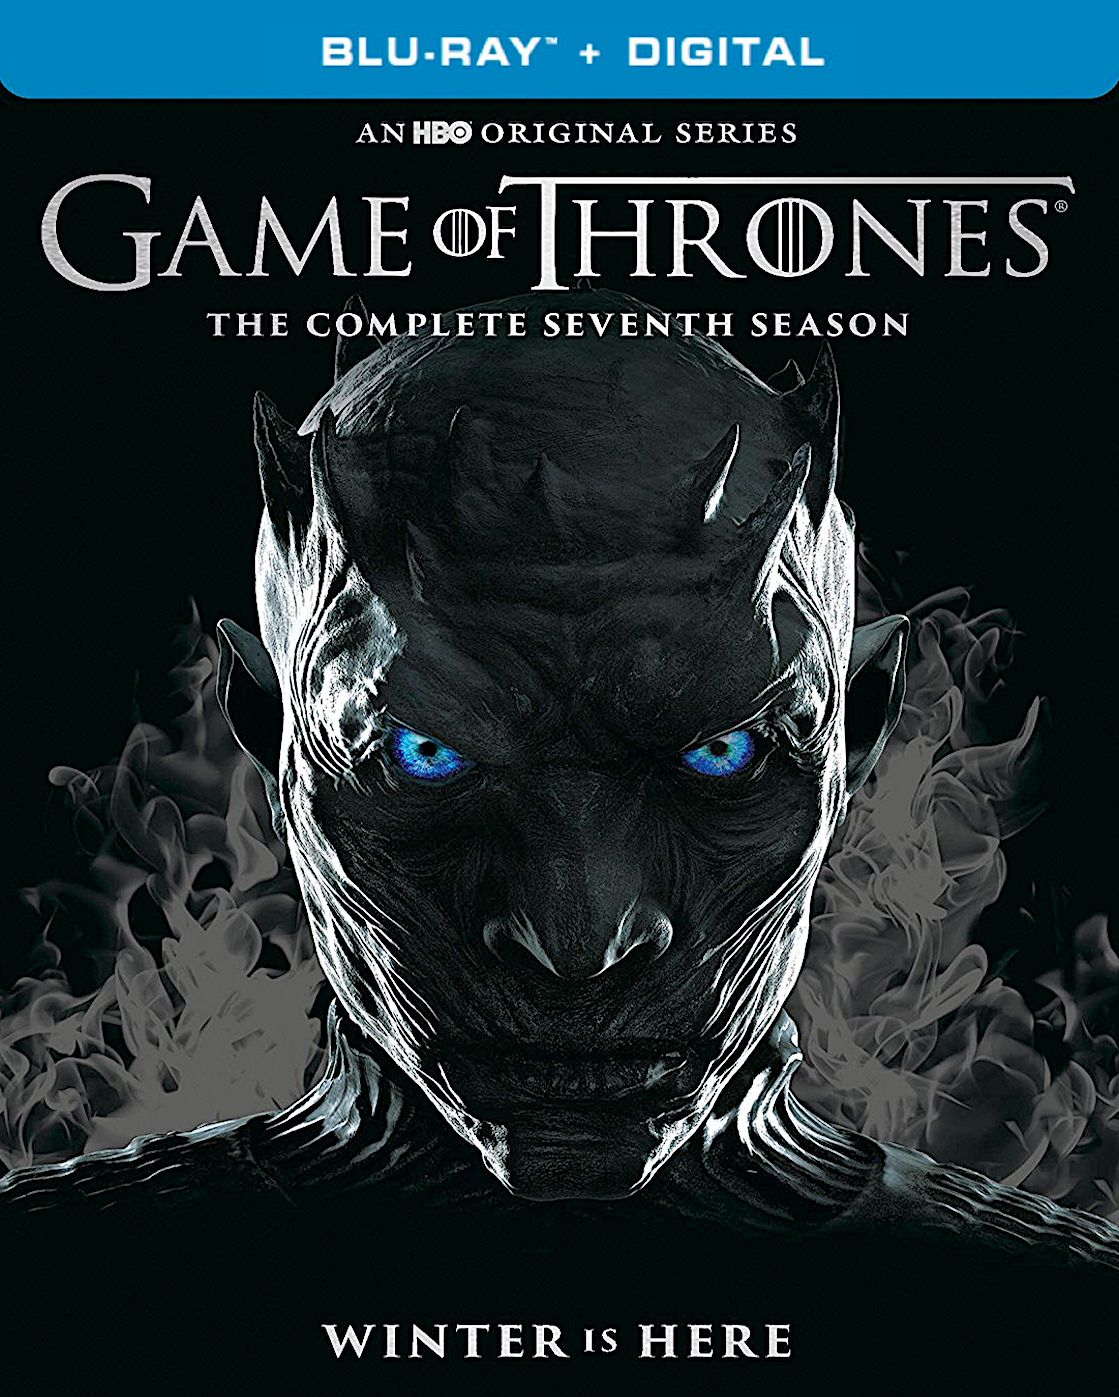 Game of thrones the complete seventh season bluray set